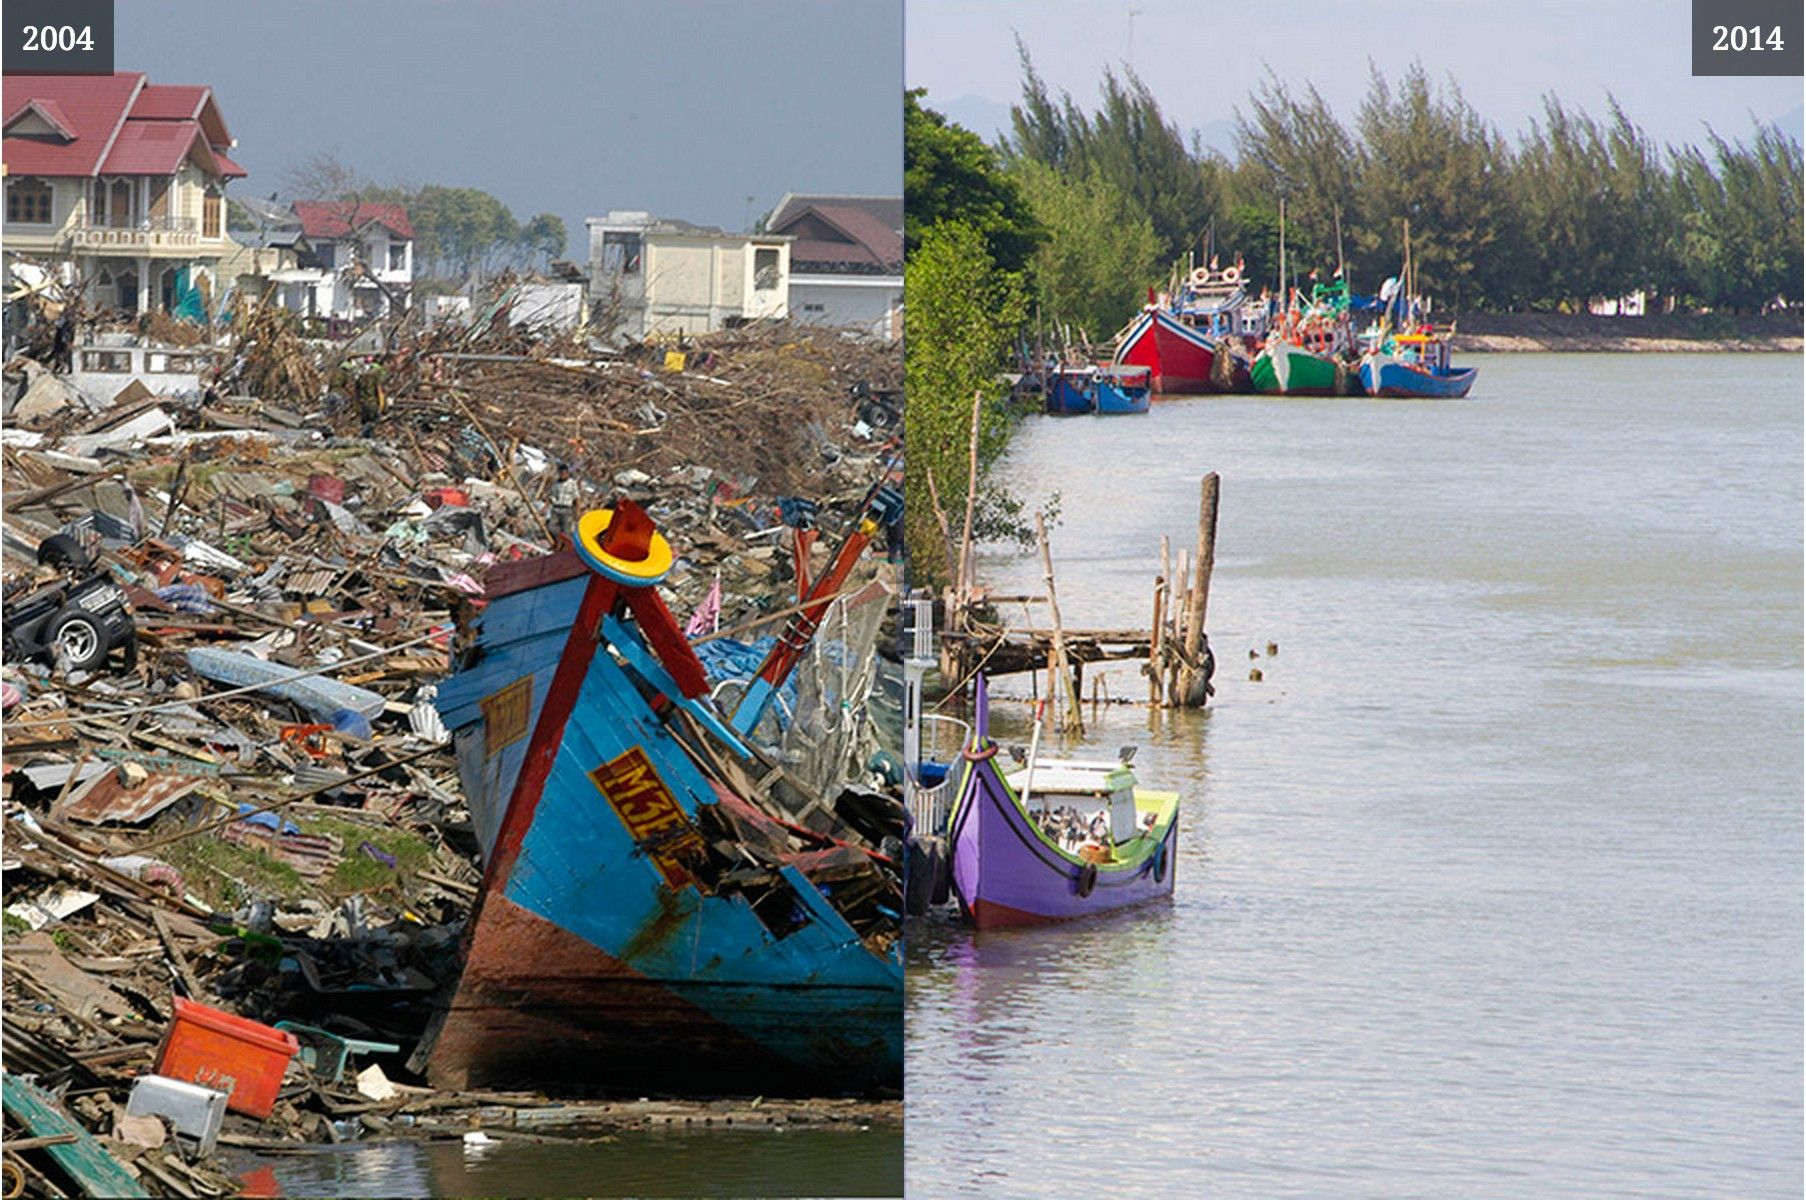 Interactive Before After Images 10 Years After The Boxing Day Tsunami Of 2004 With Images Tsunami 10 Years After Boxing Day